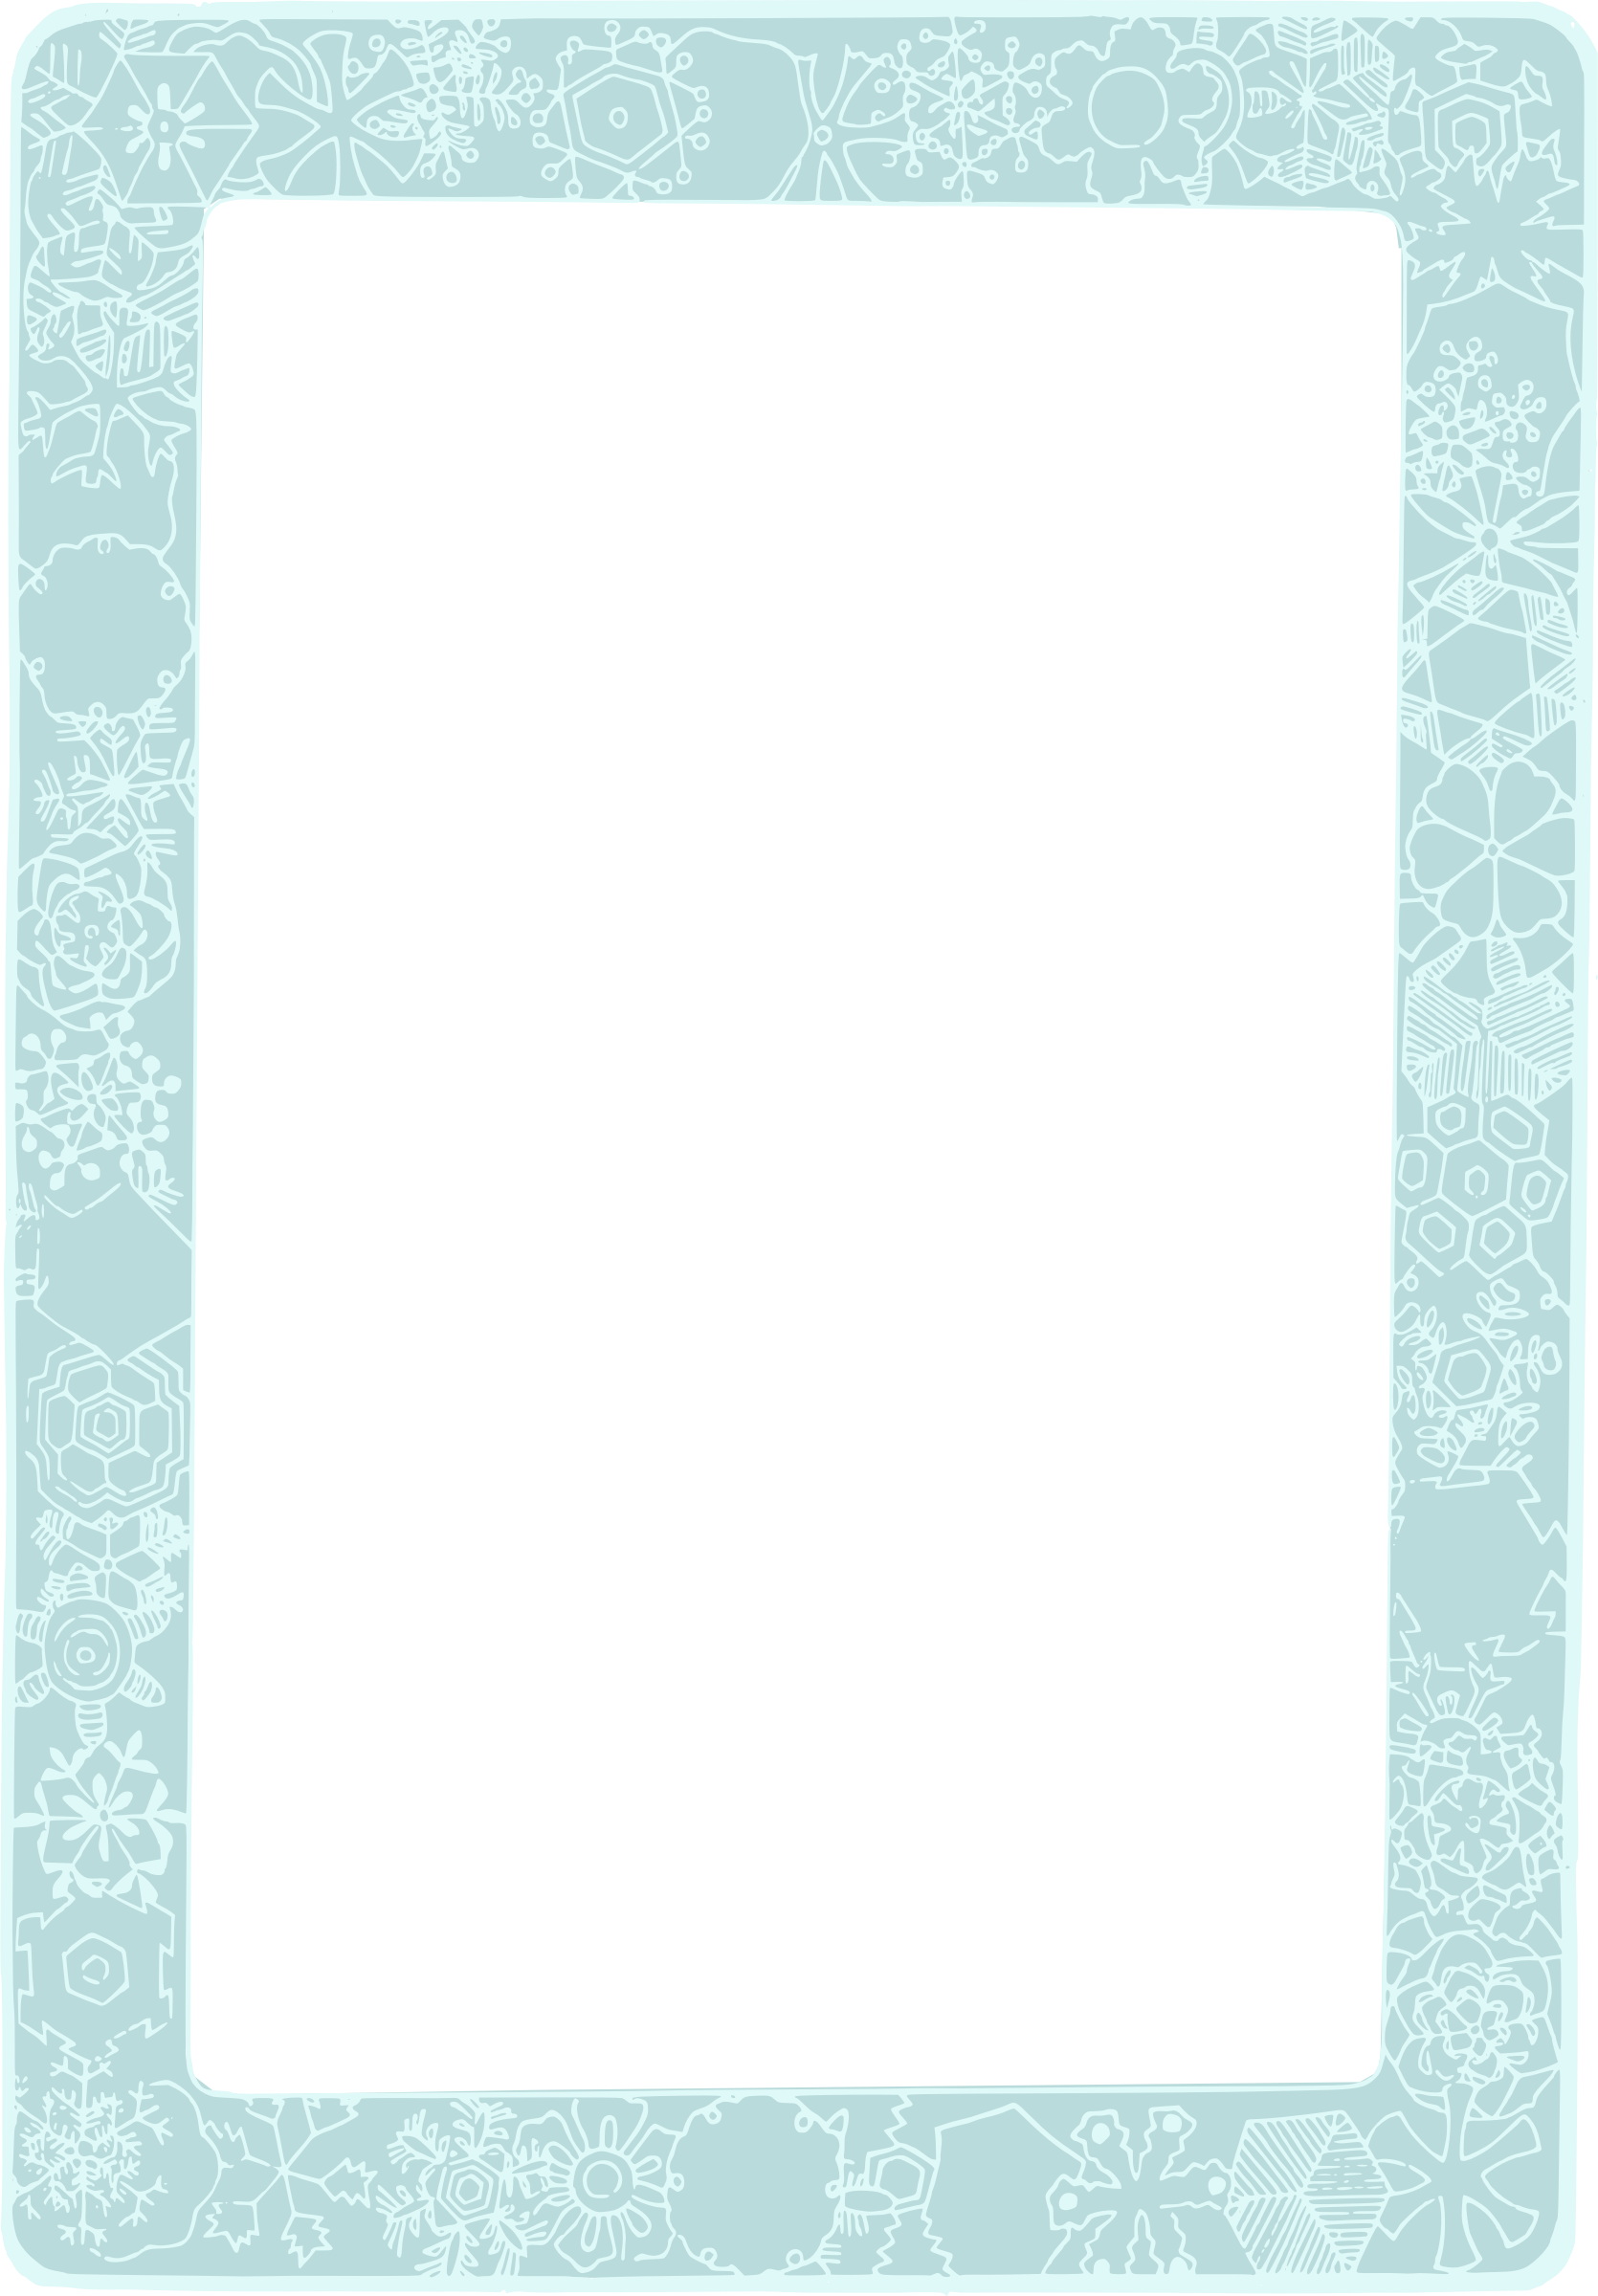 Snowflake frame png. Colour icons free and